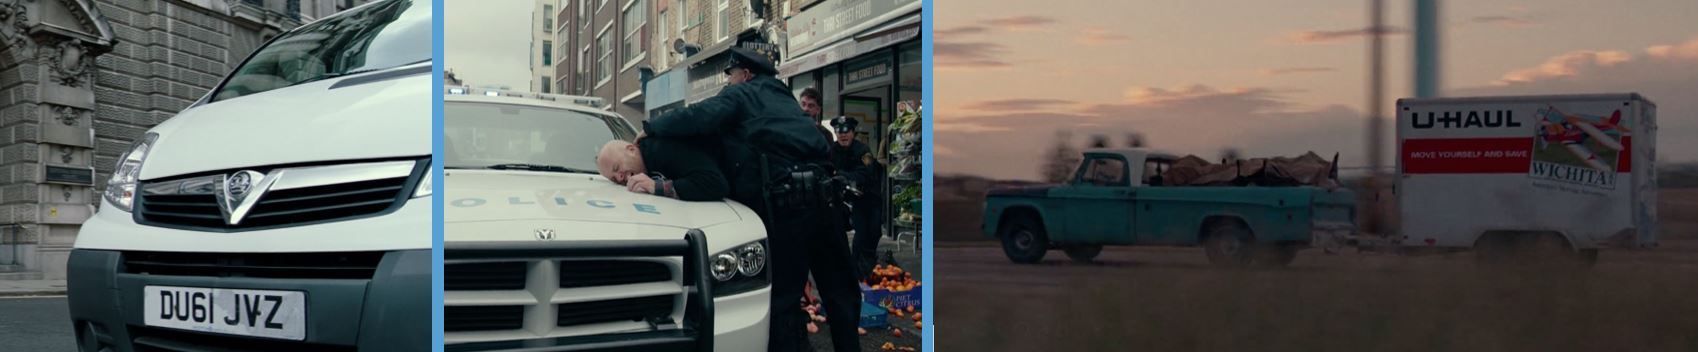 justice league product placement concave brand tracking vauxhall dodge u haul